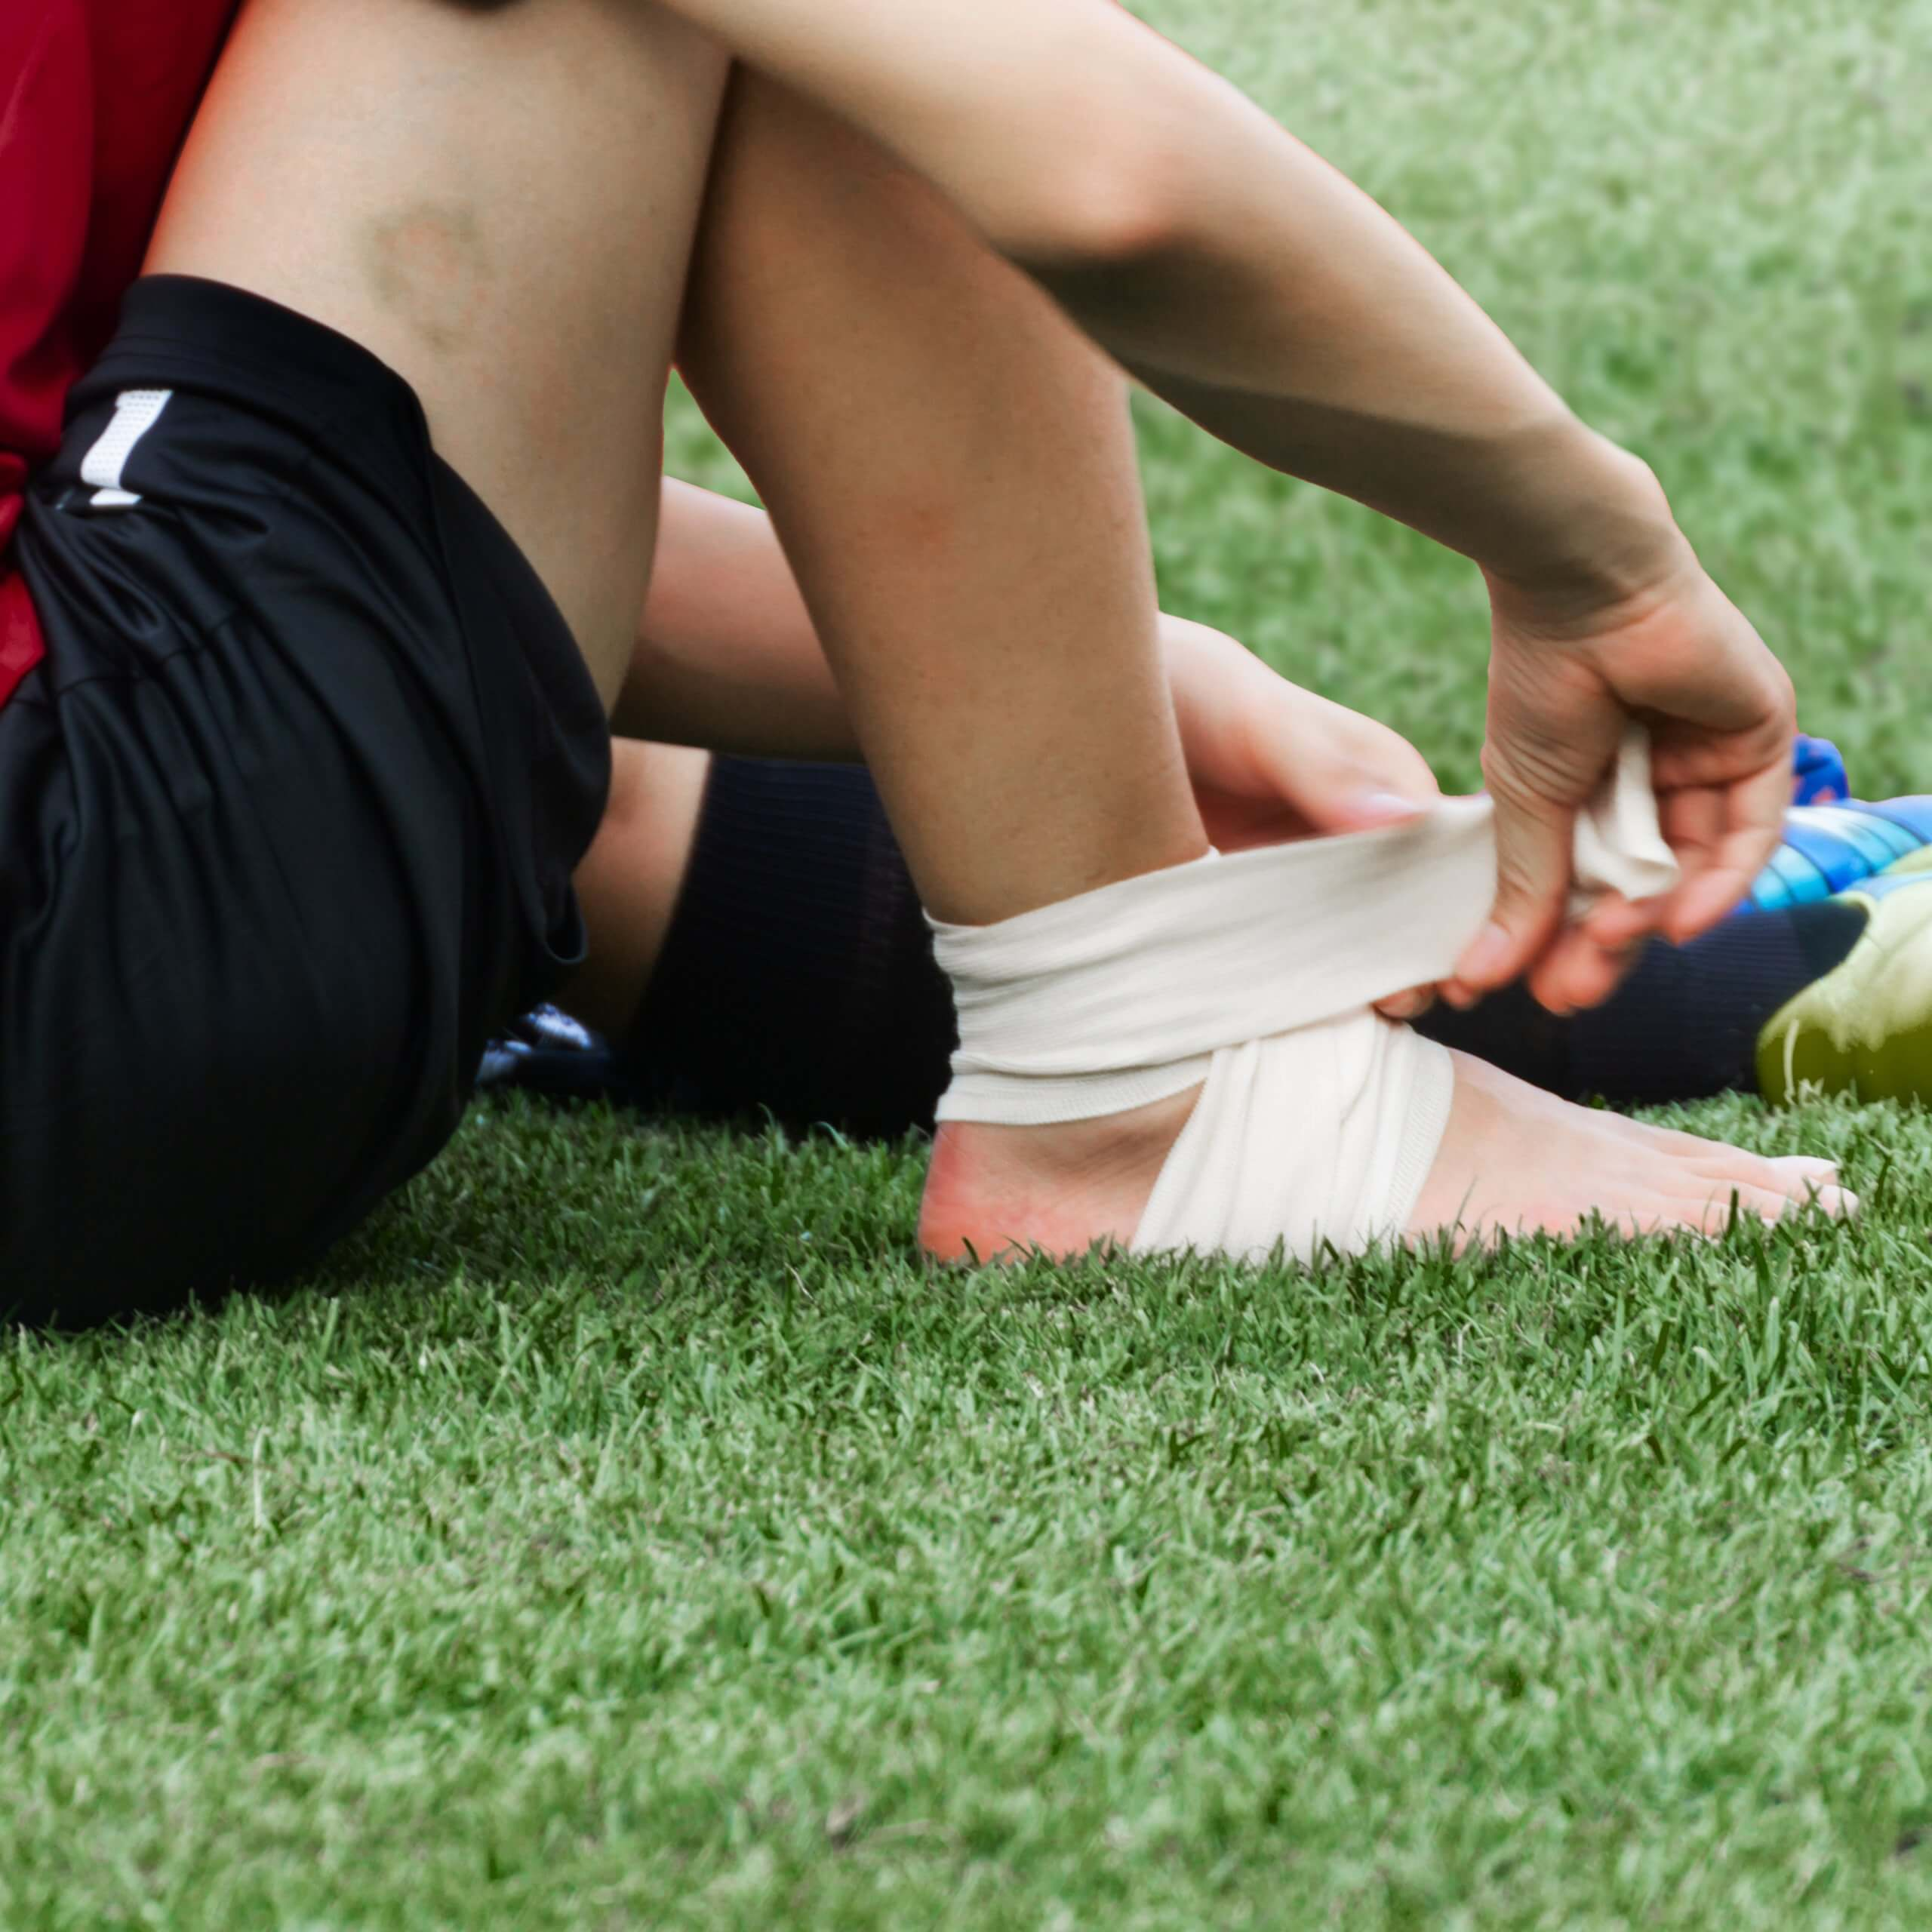 man applying compression bandage onto ankle injury of a football